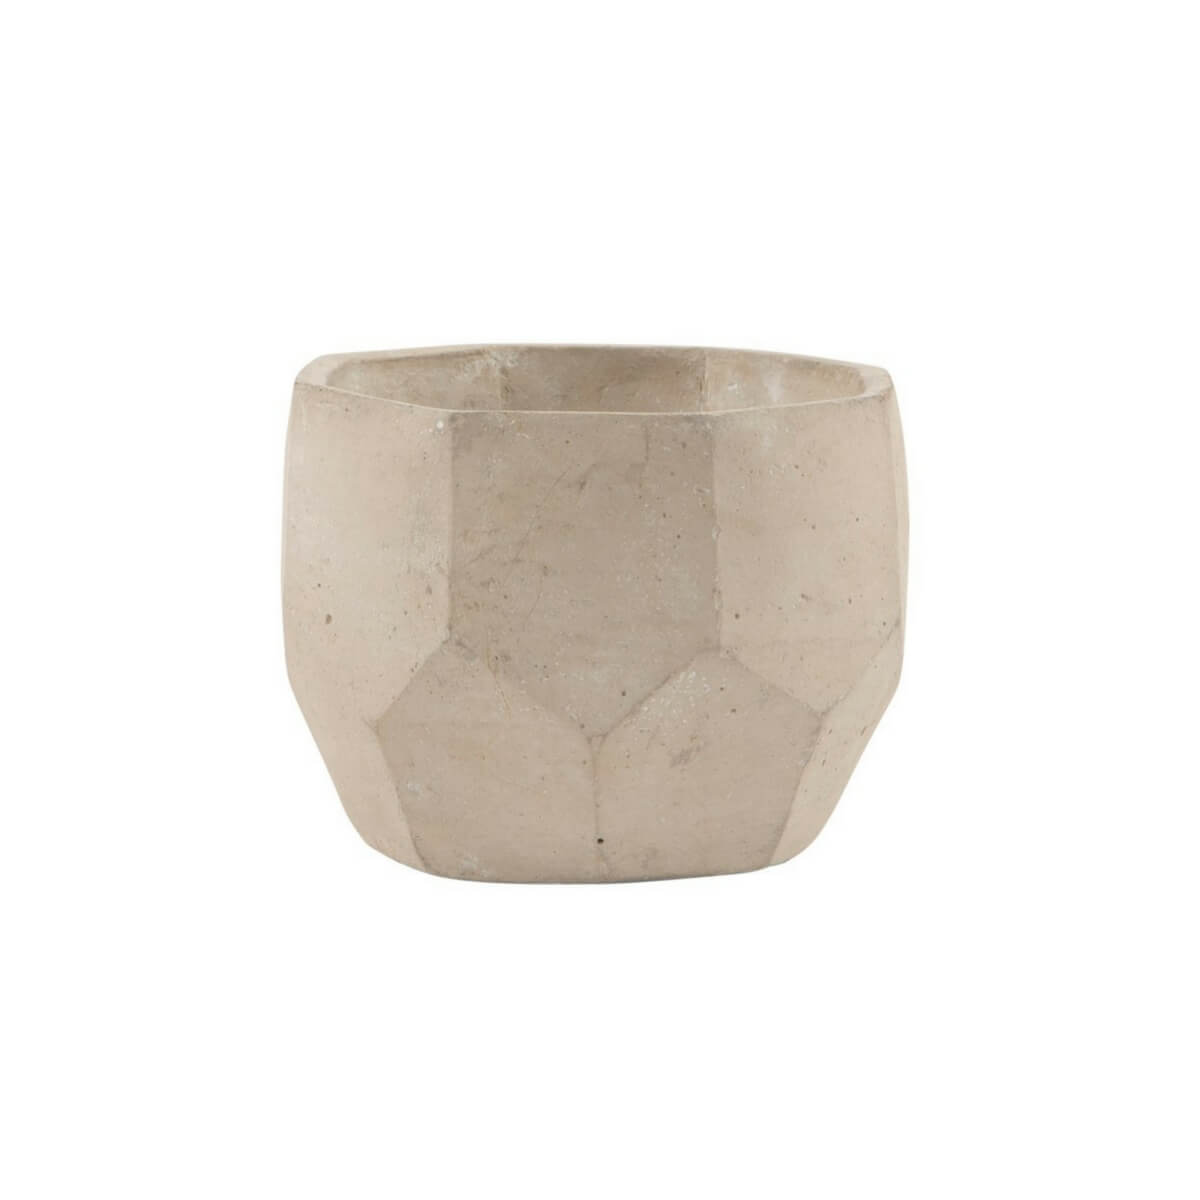 Cutout image of the mini geometric cement planter